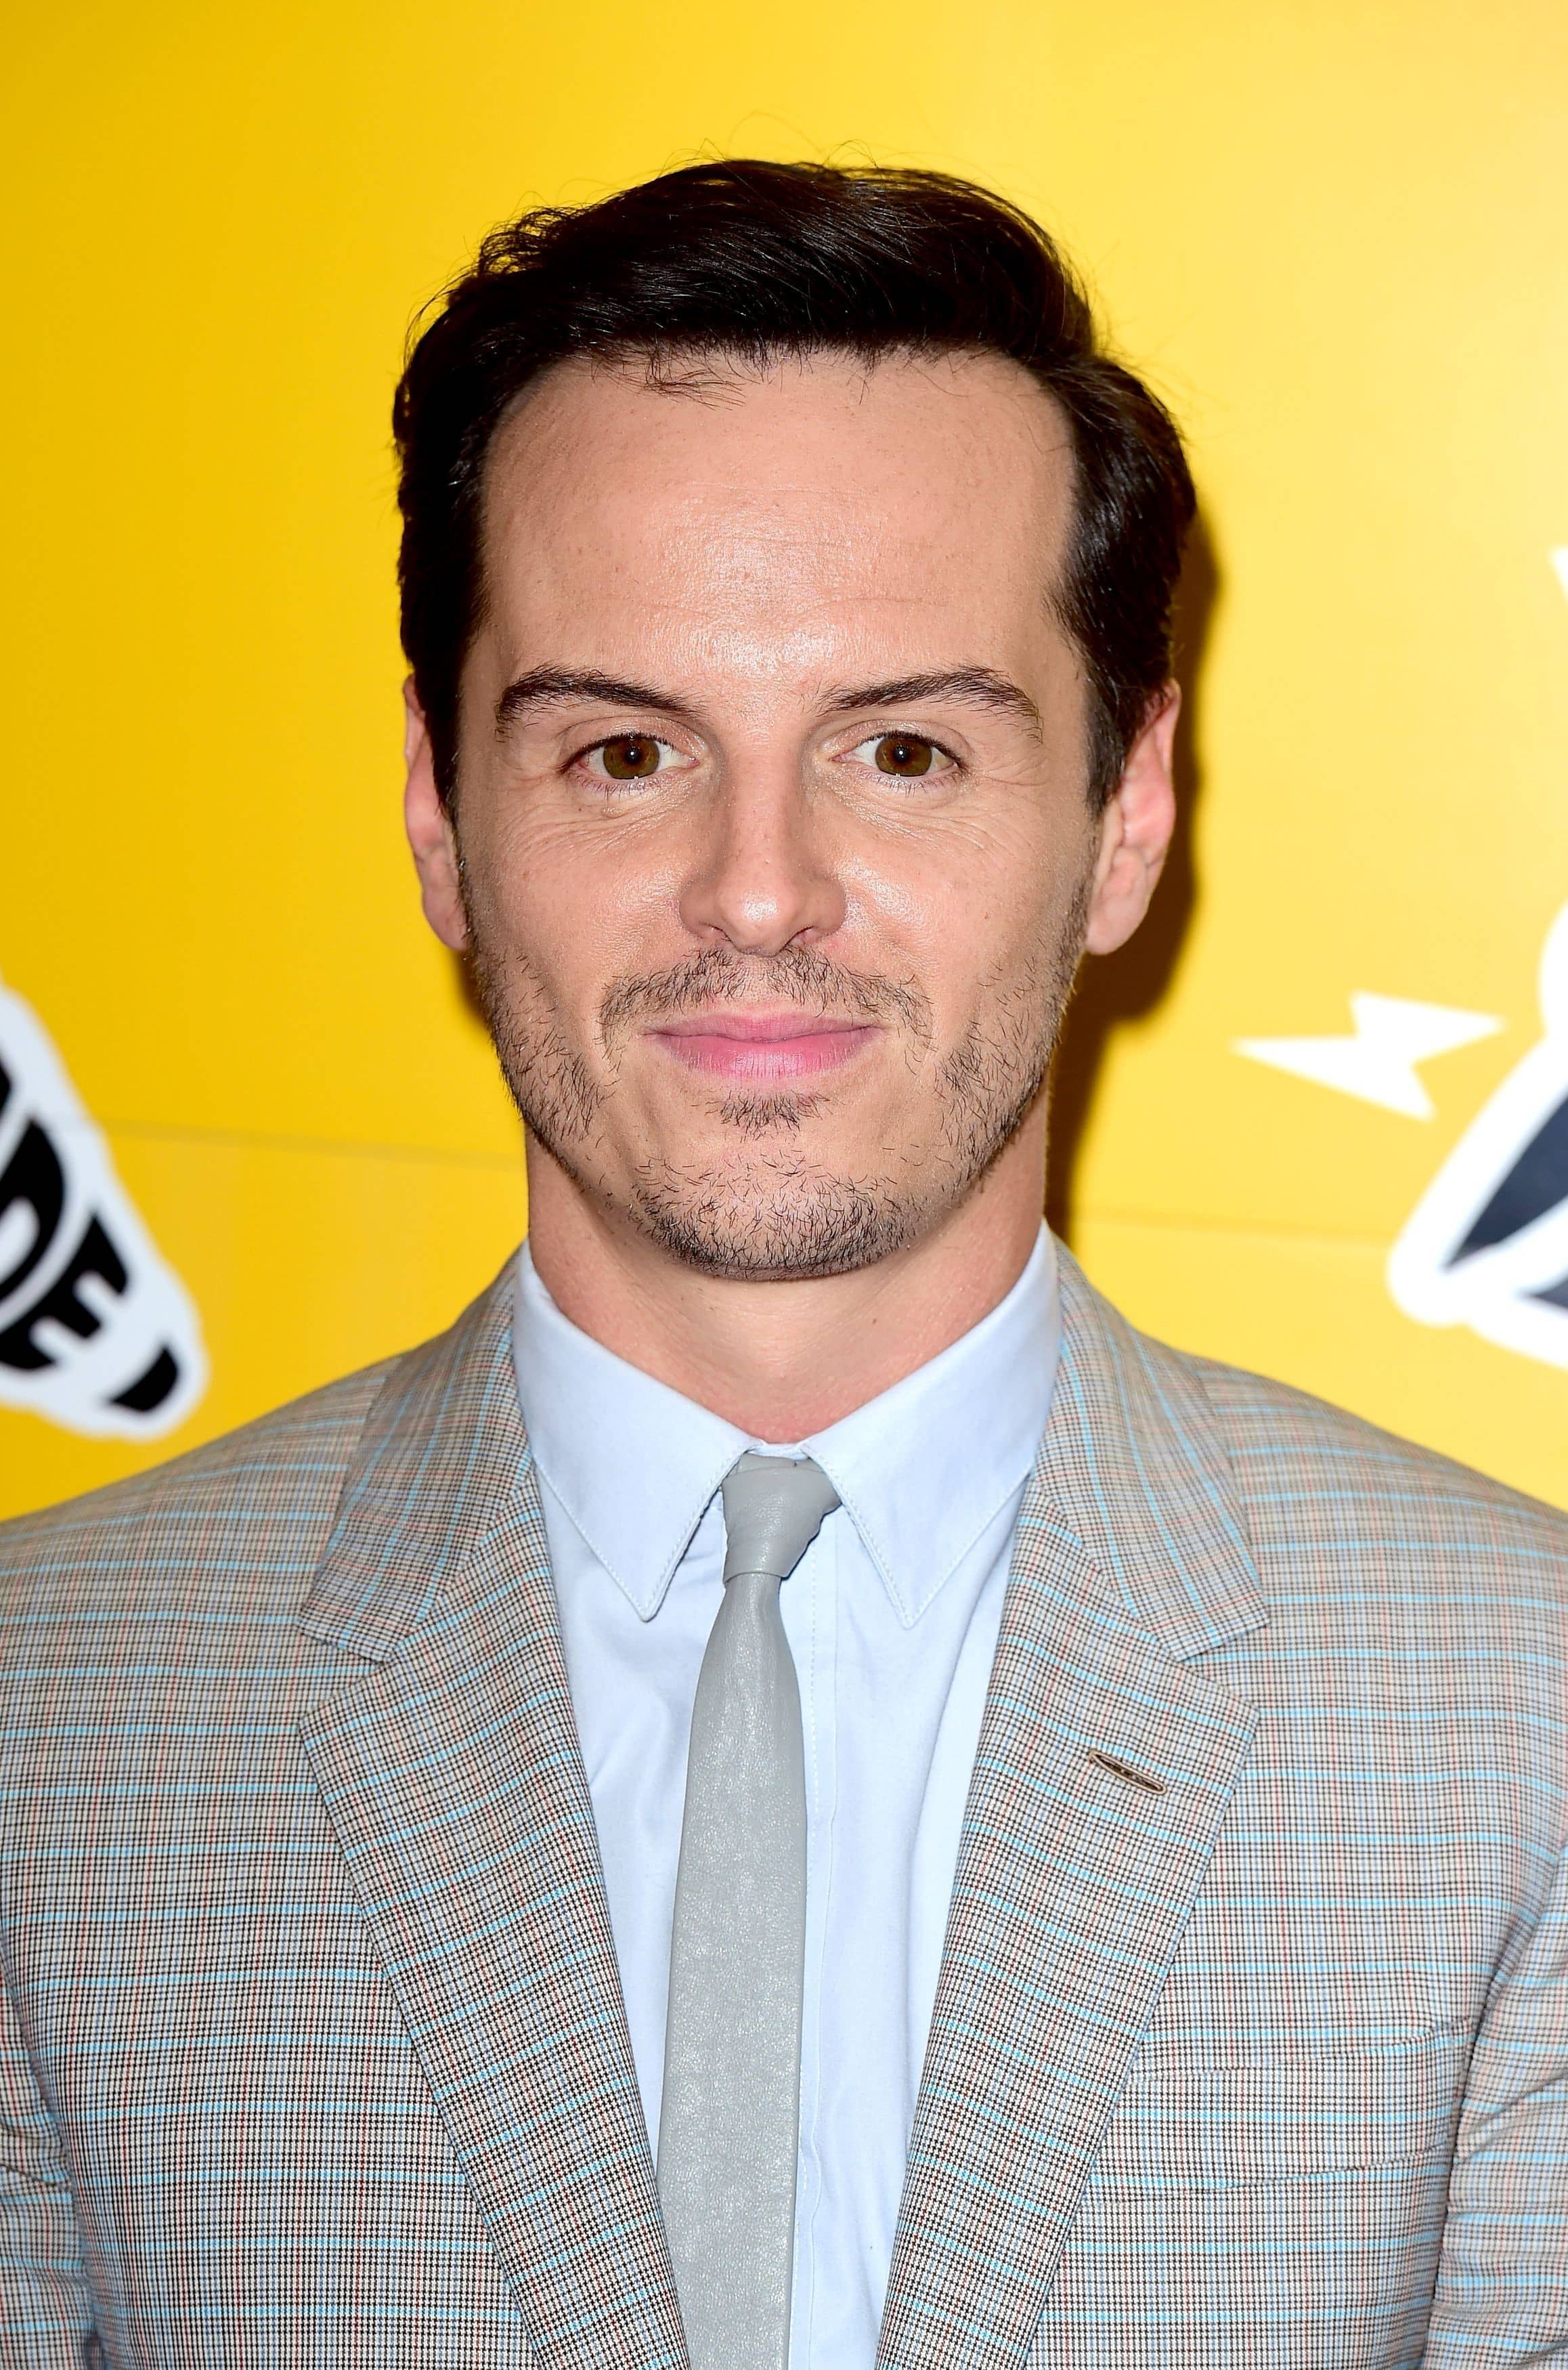 Andrew Scott Wallpaper